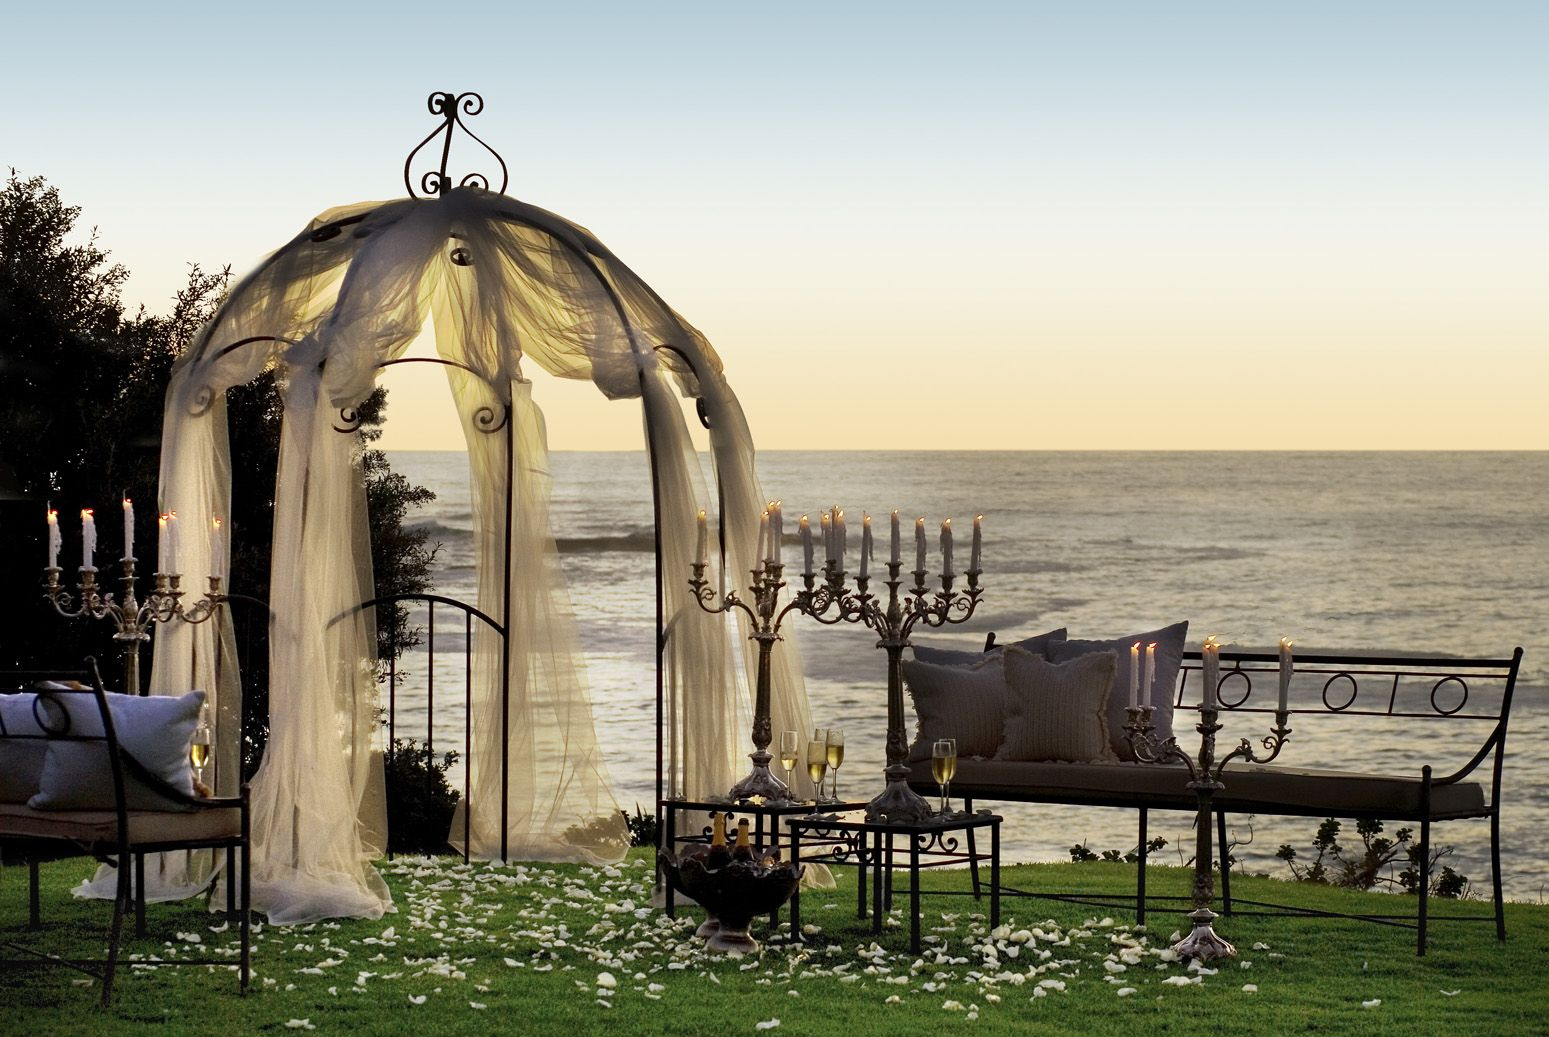 Wedding decorations hd  Love white gazebos  gazebos  Pinterest  White gazebo Gardens and